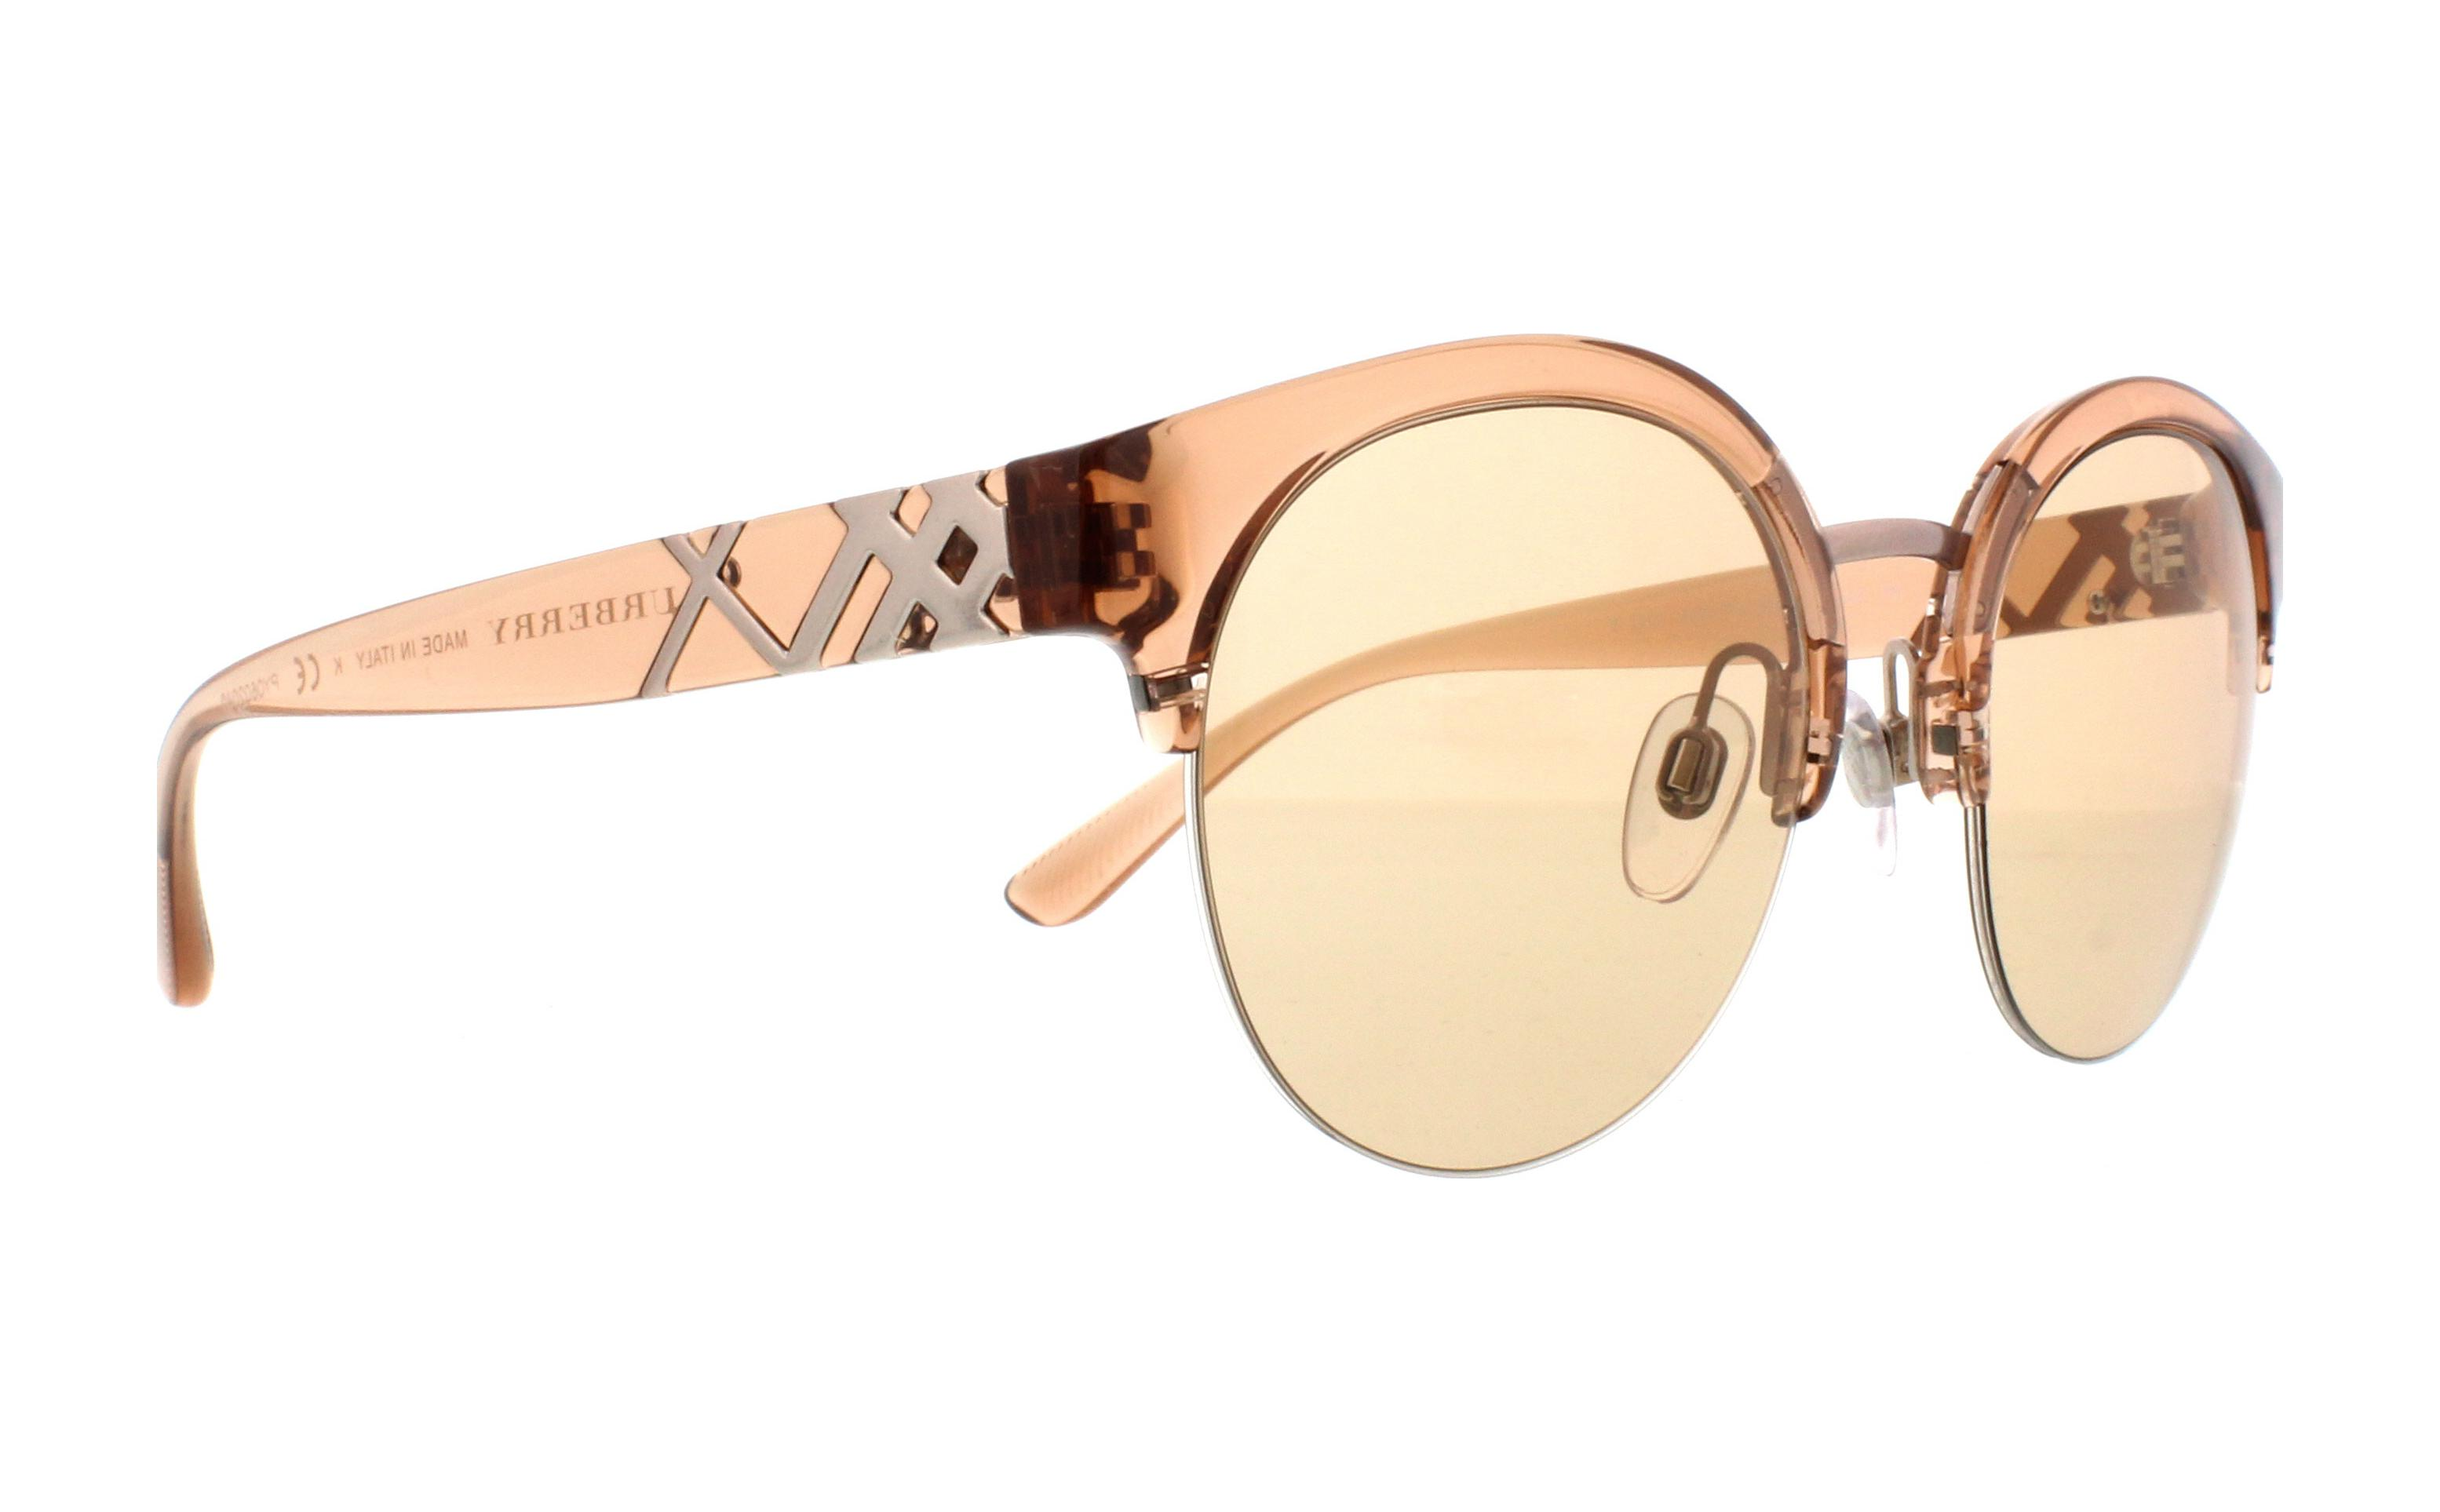 15f44c8cdd1 BURBERRY Sunglasses BE4241 367473 Brown 52MM 8053672808100